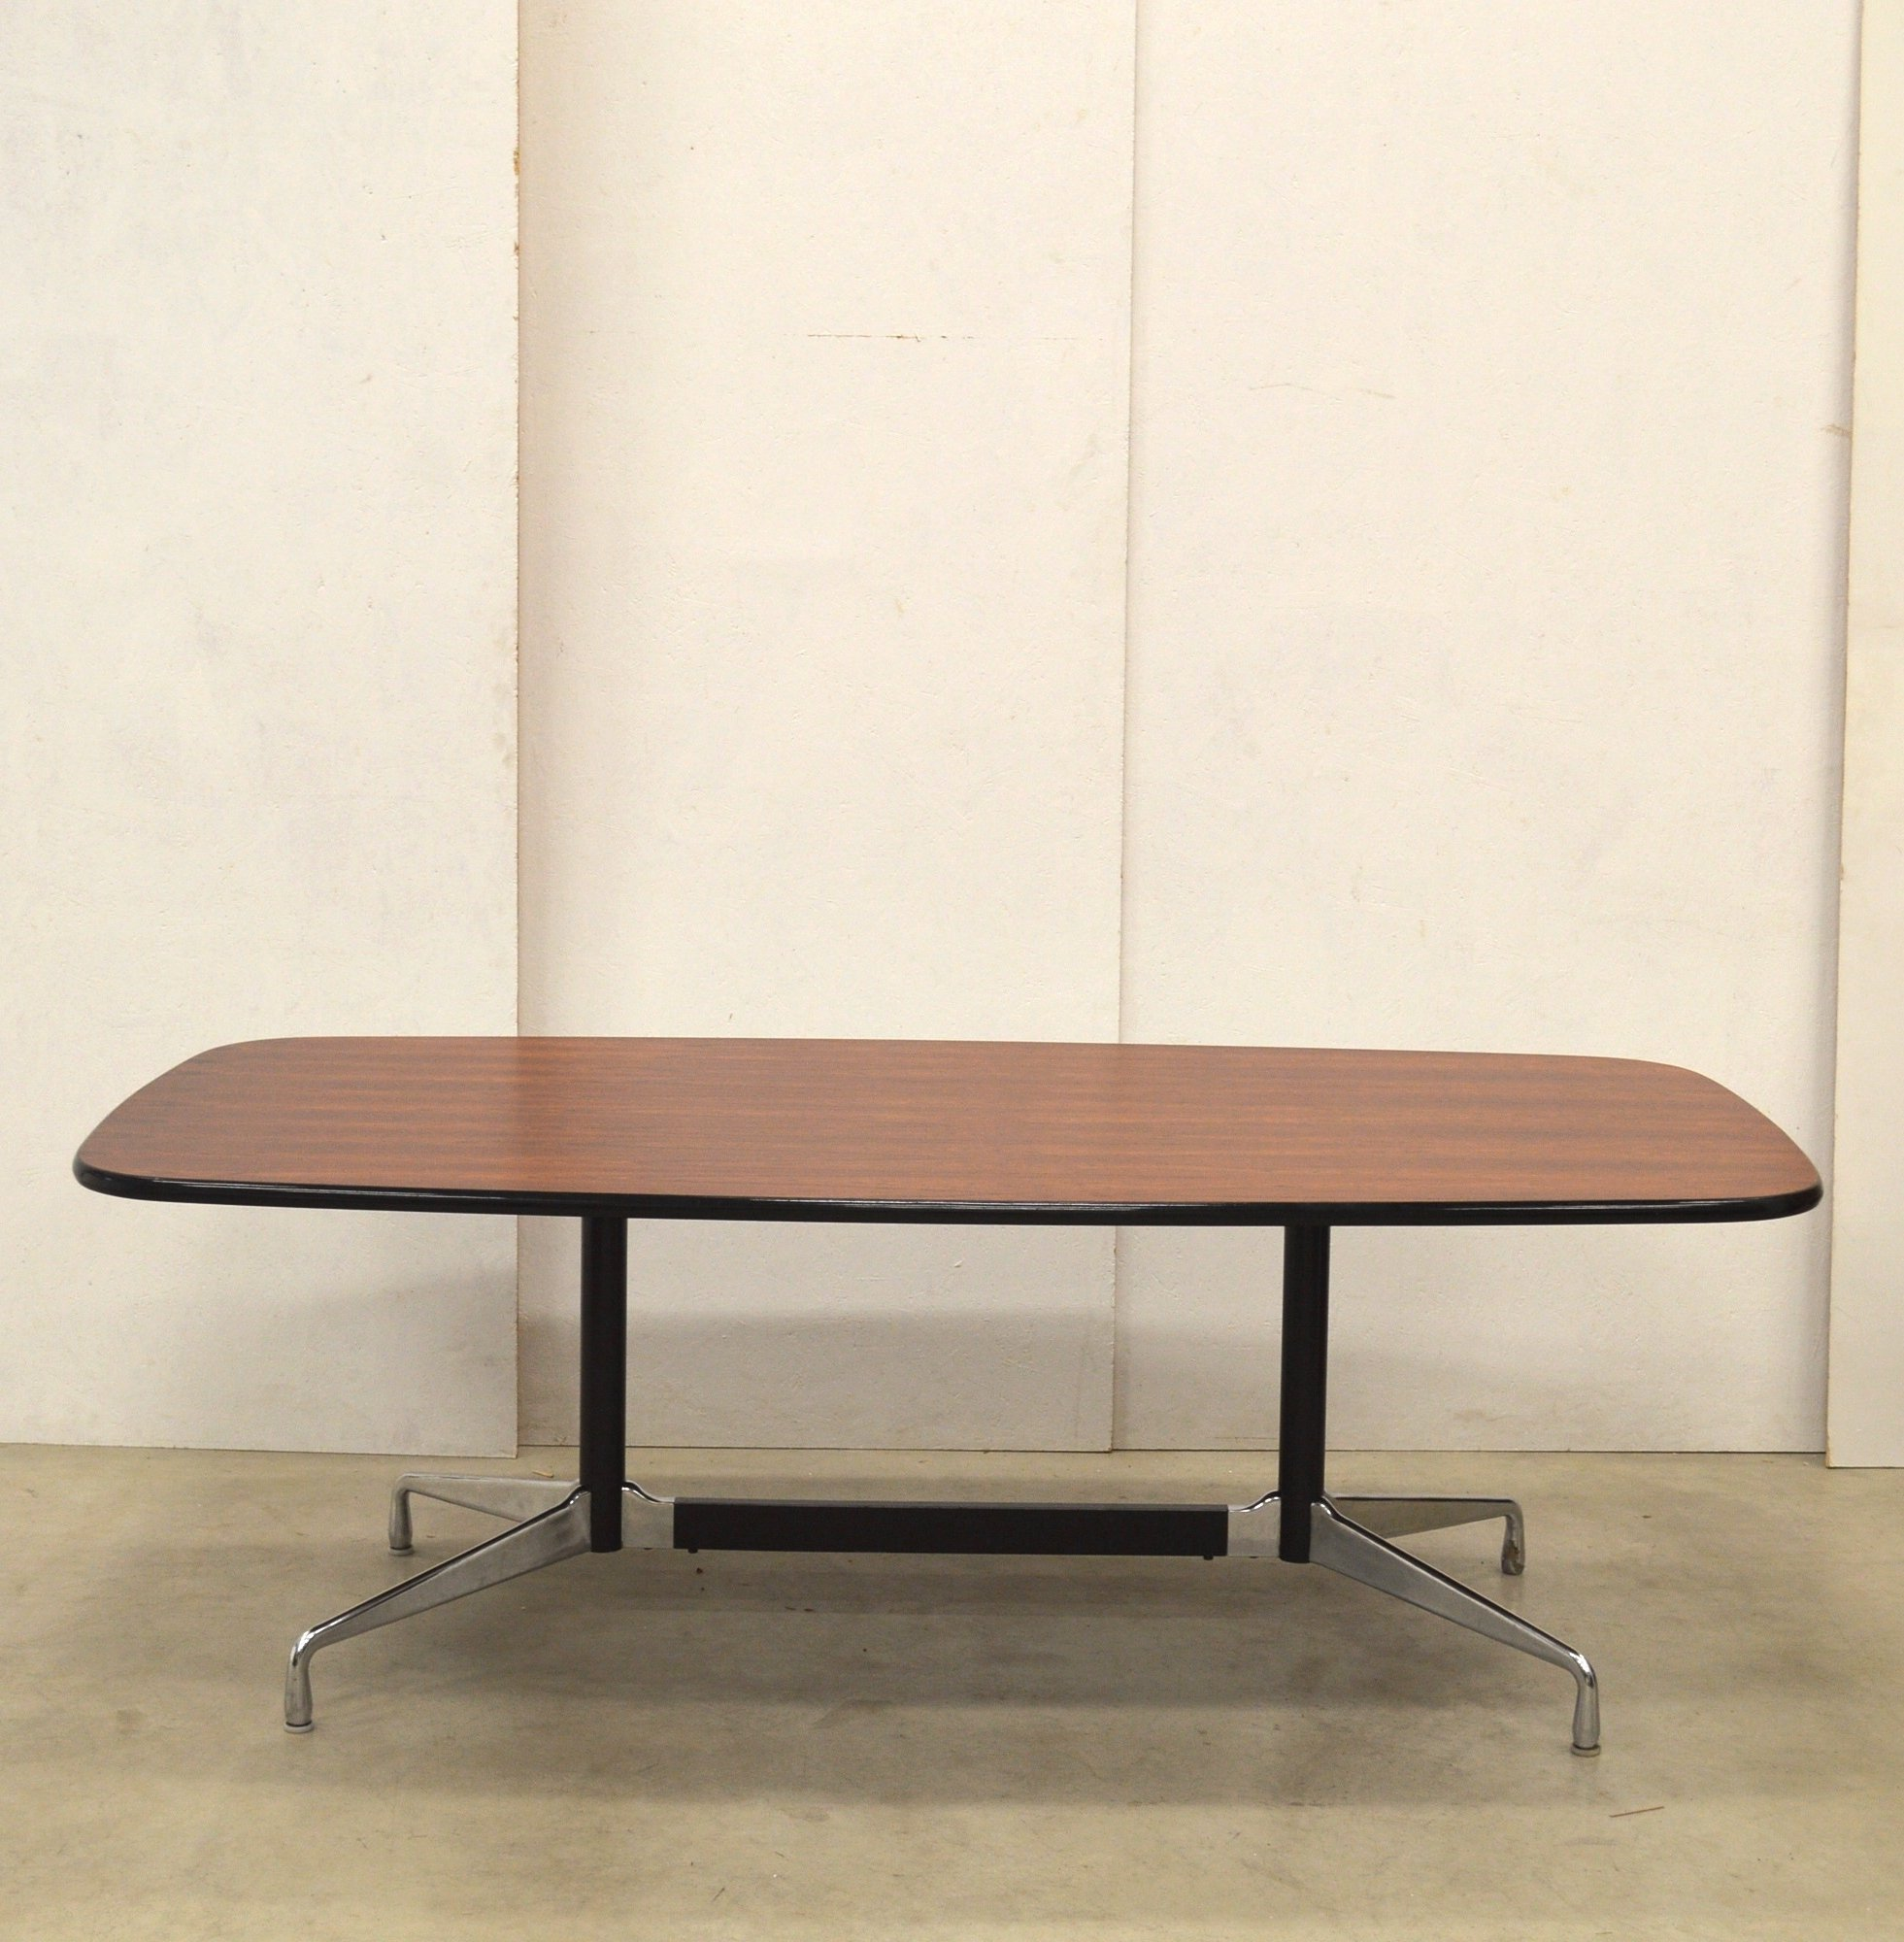 Segmented Rosewood Dining Table By Charles Ray Eames For Herman Miller 1970s 118120